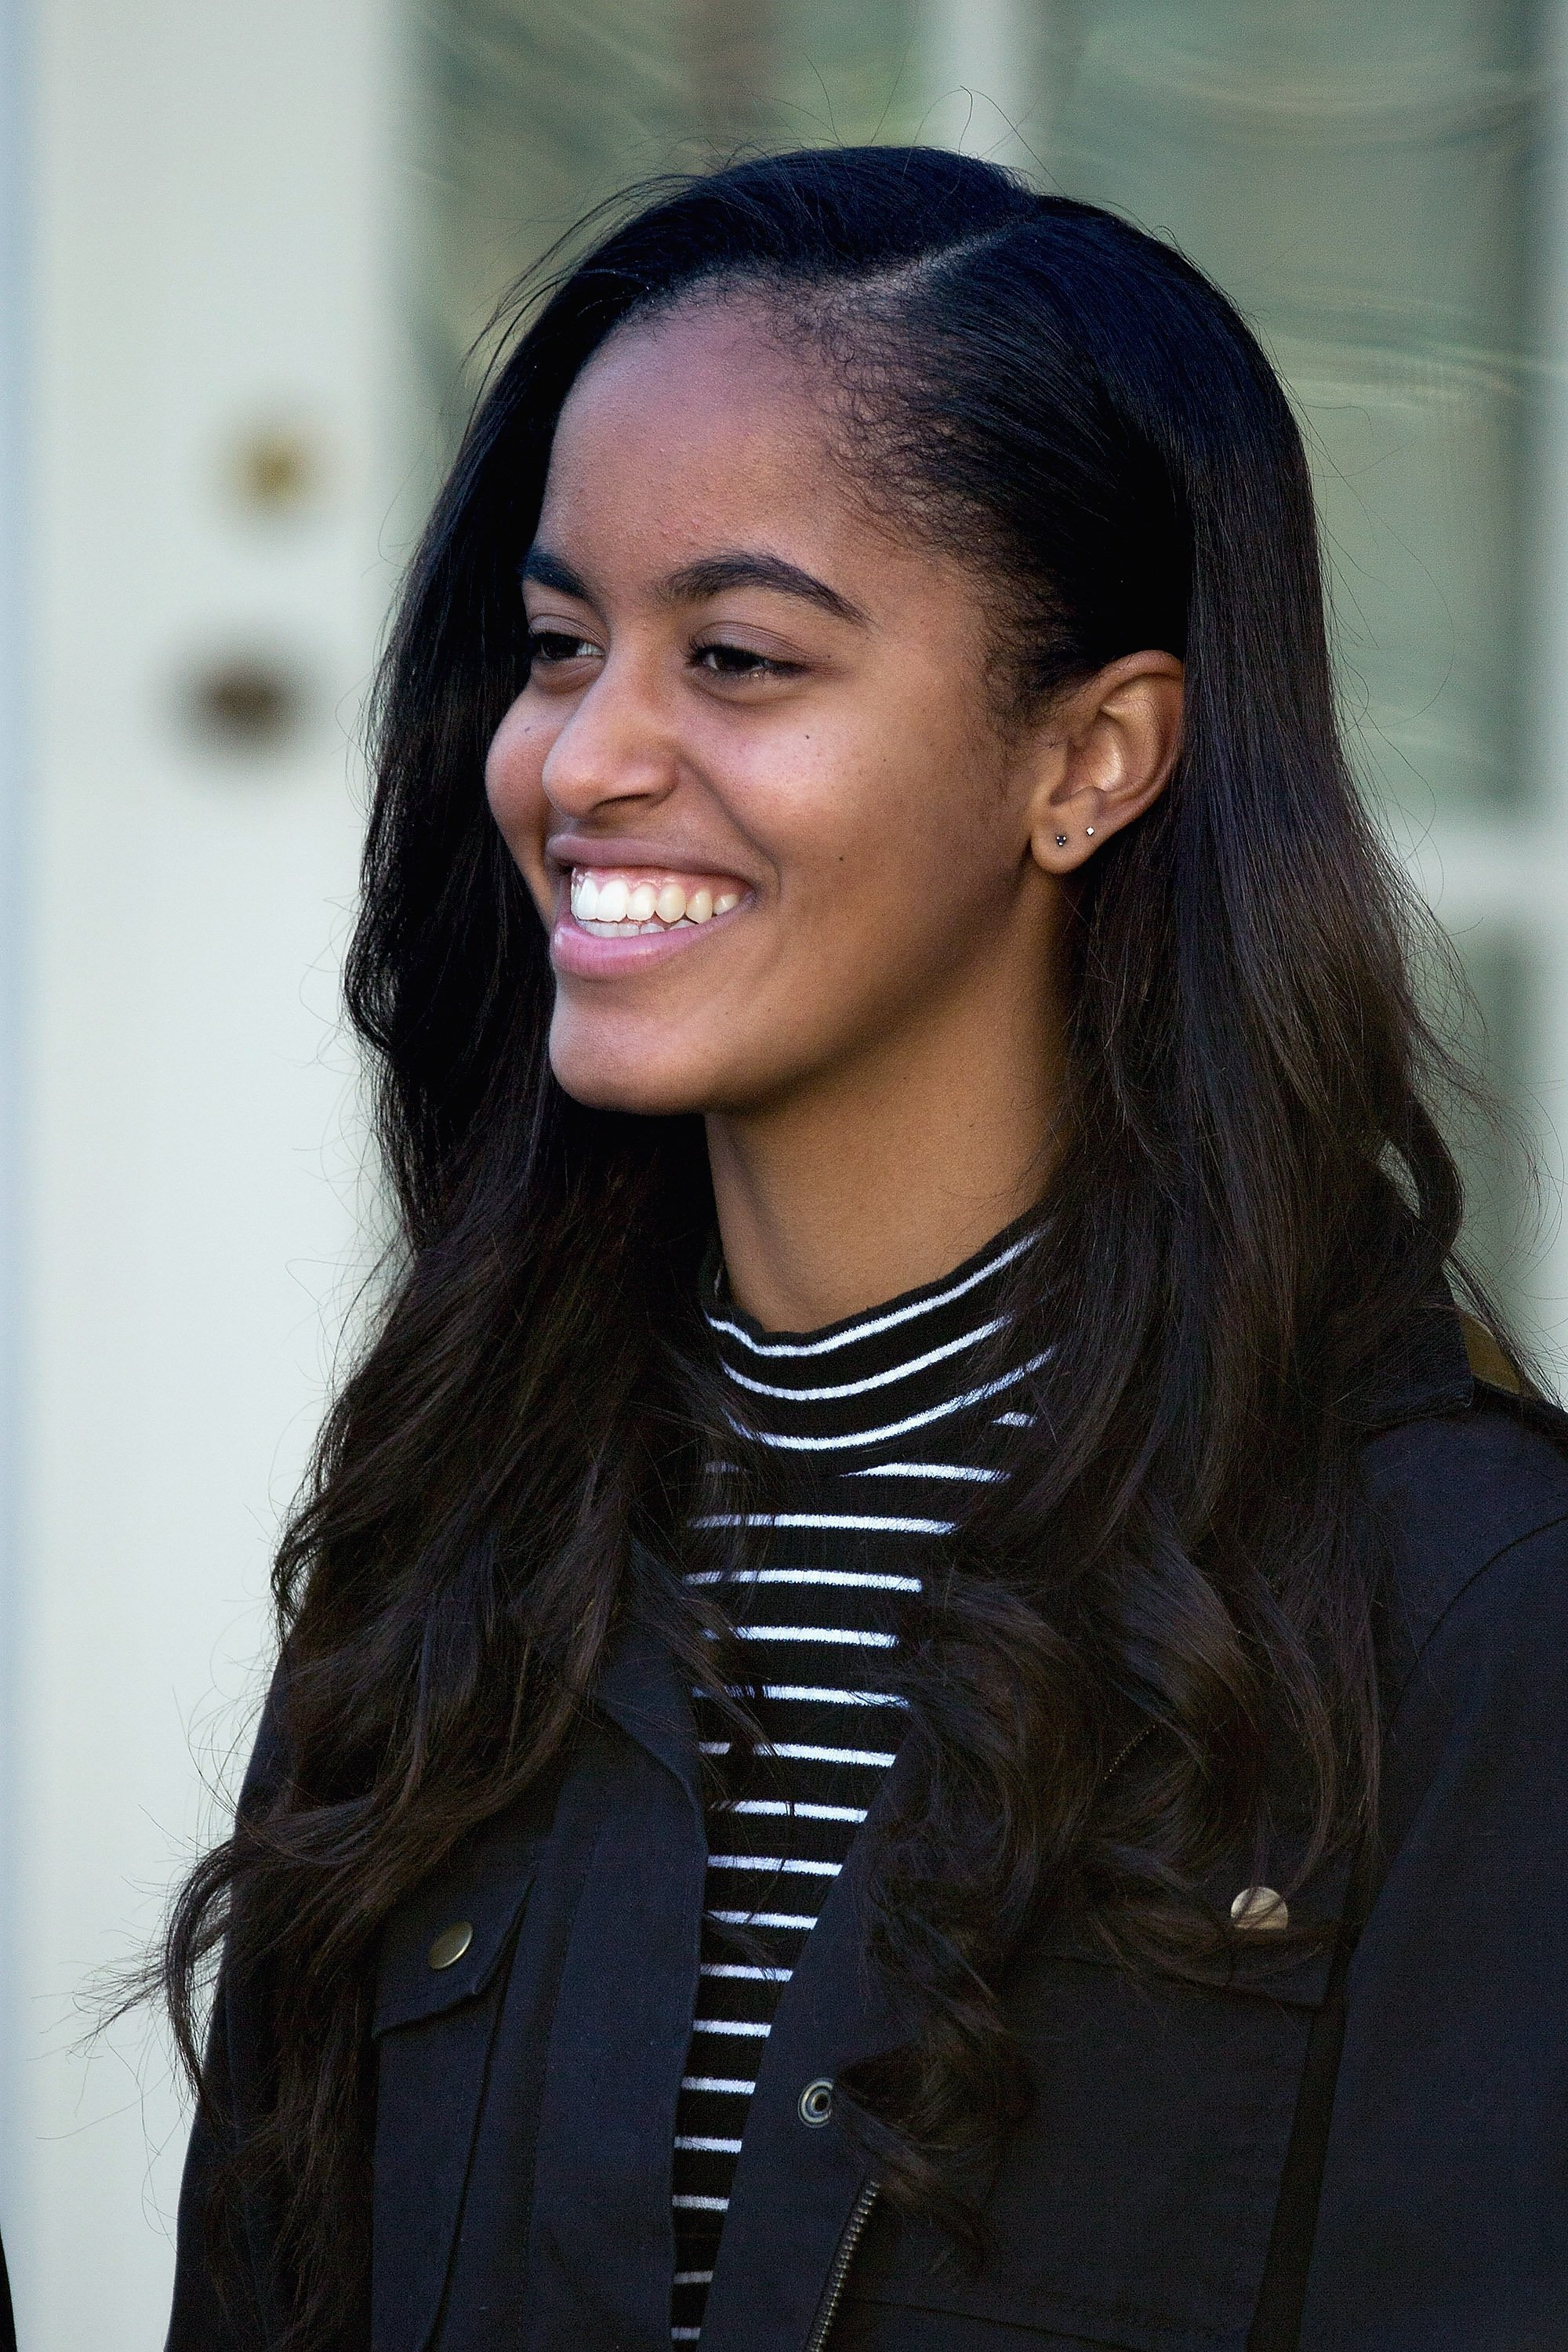 Malia Obama attending the turkey pardoning ceremony in November 2015 | Photo: Getty Images